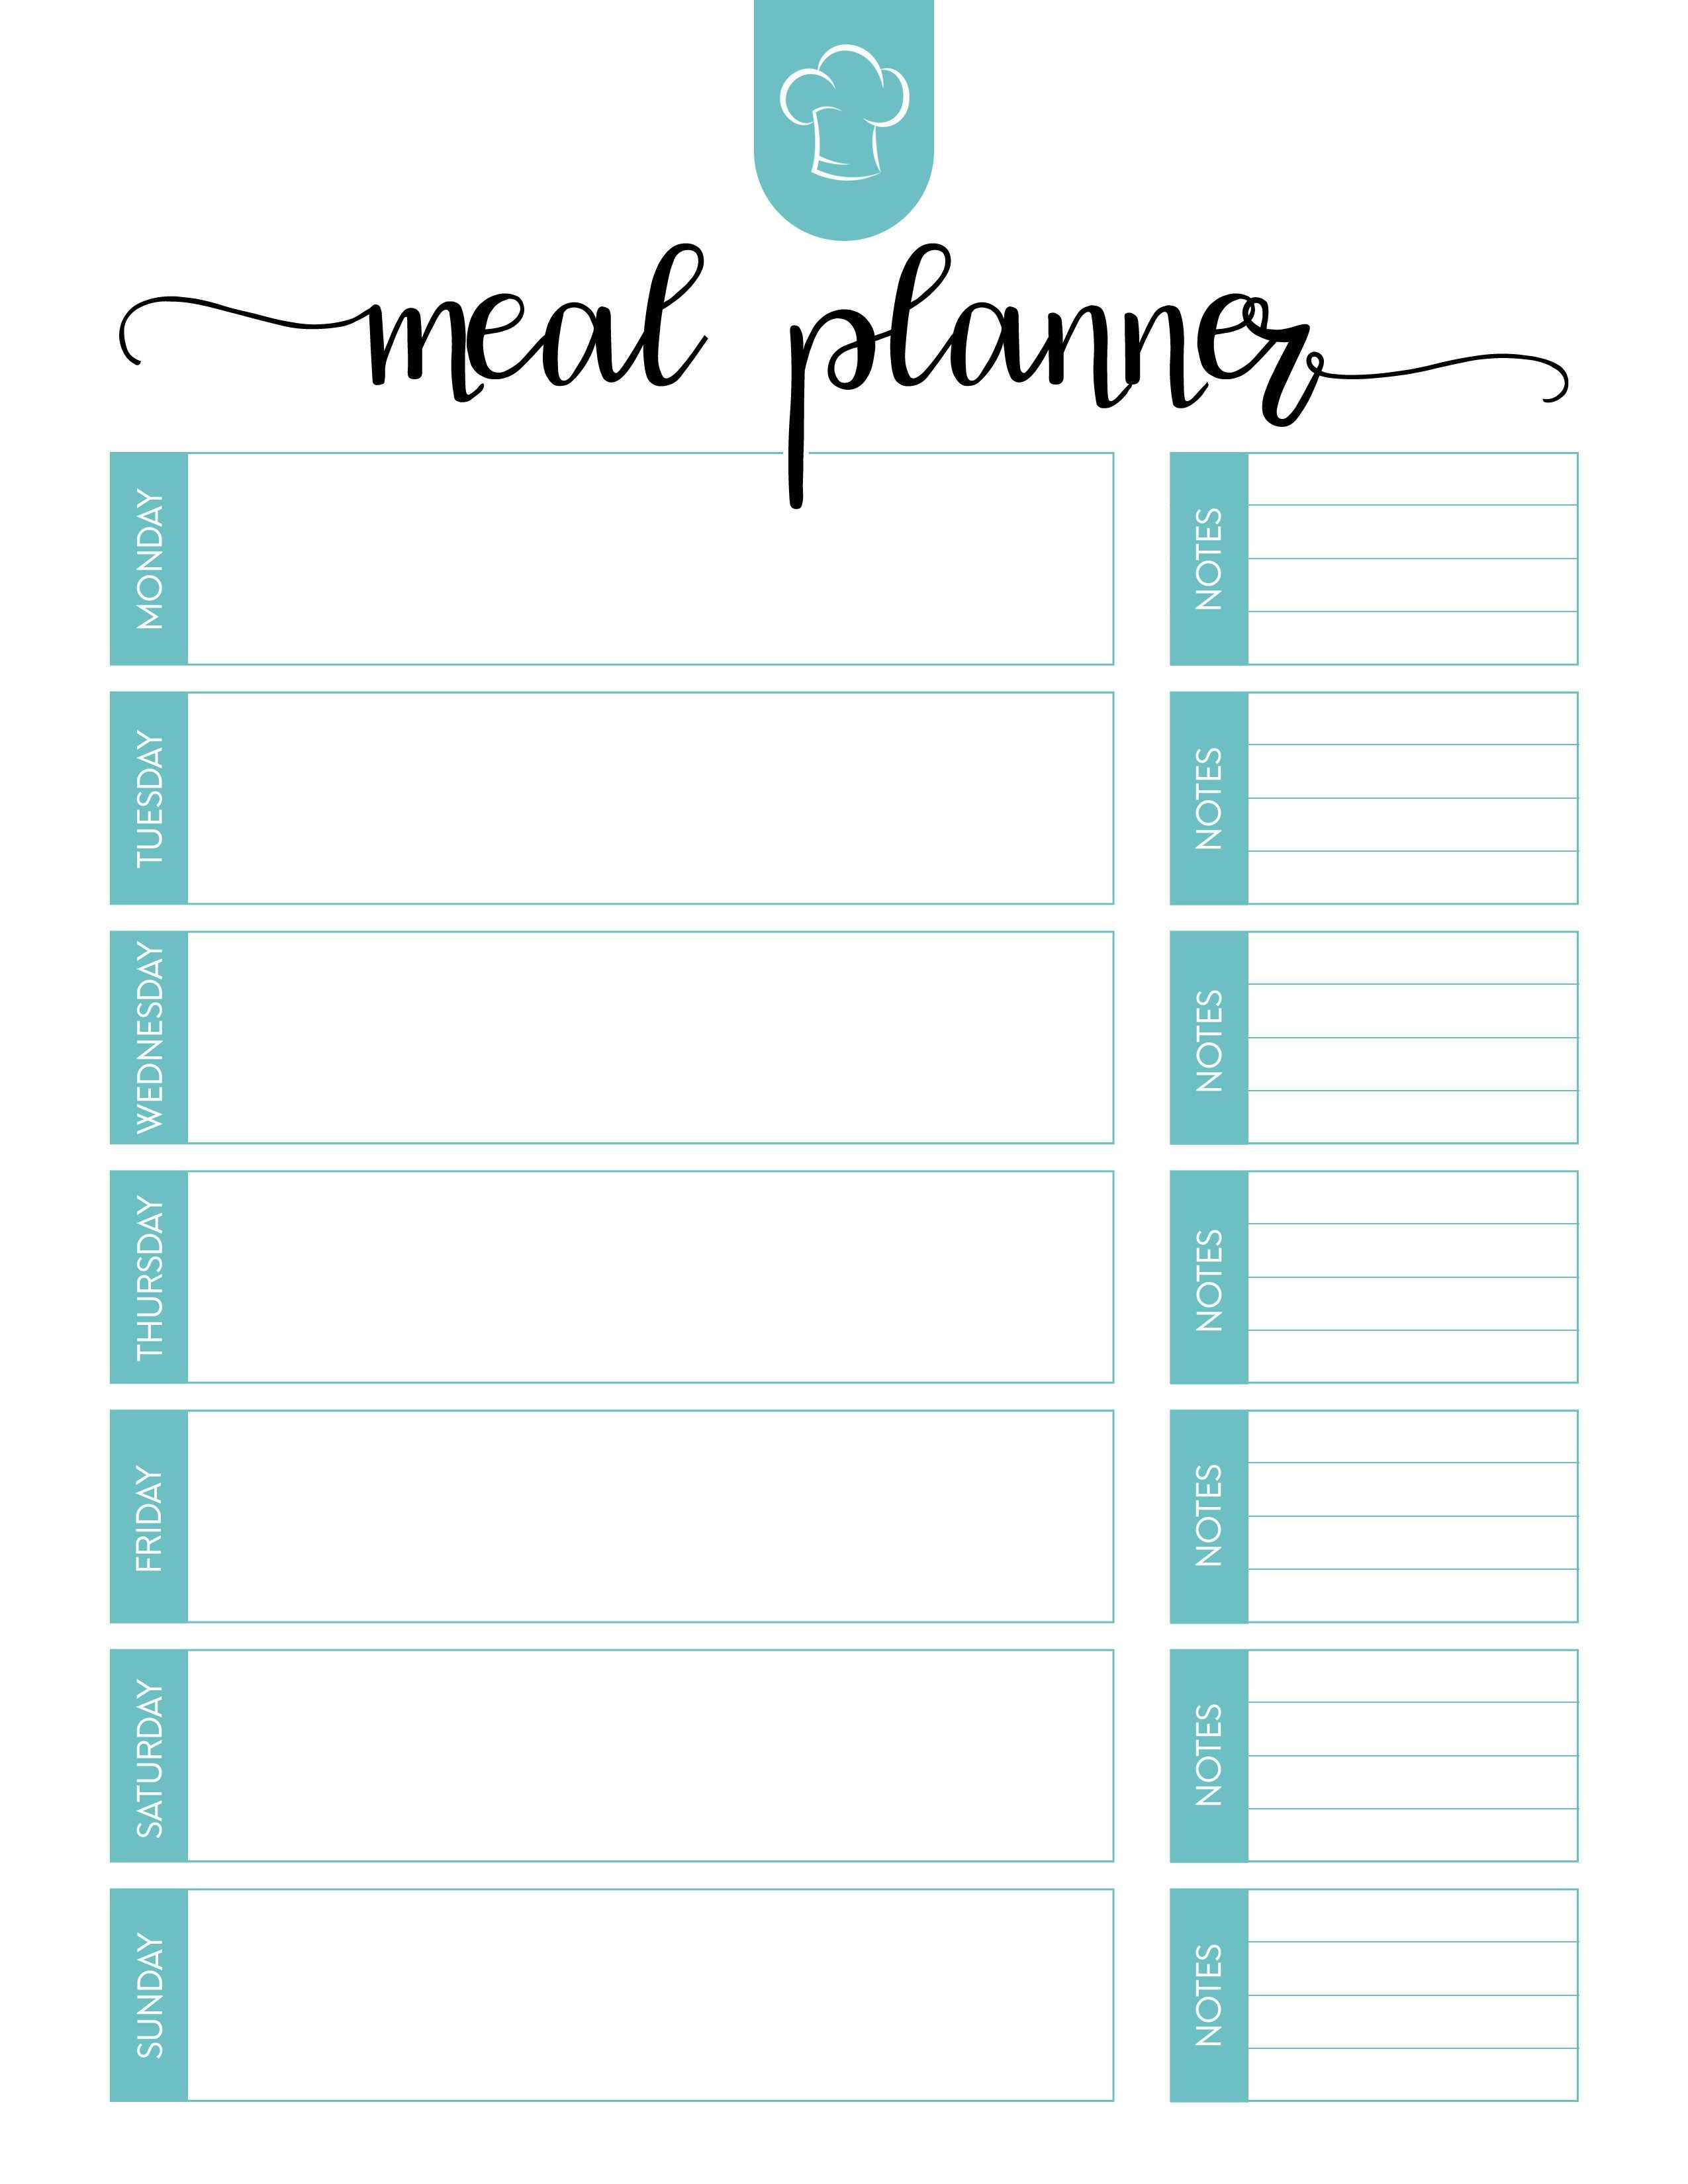 Template Ideas Meal Planning Stirring Calendar Free Menu Planner Pertaining To Menu Planner With Grocery List Template